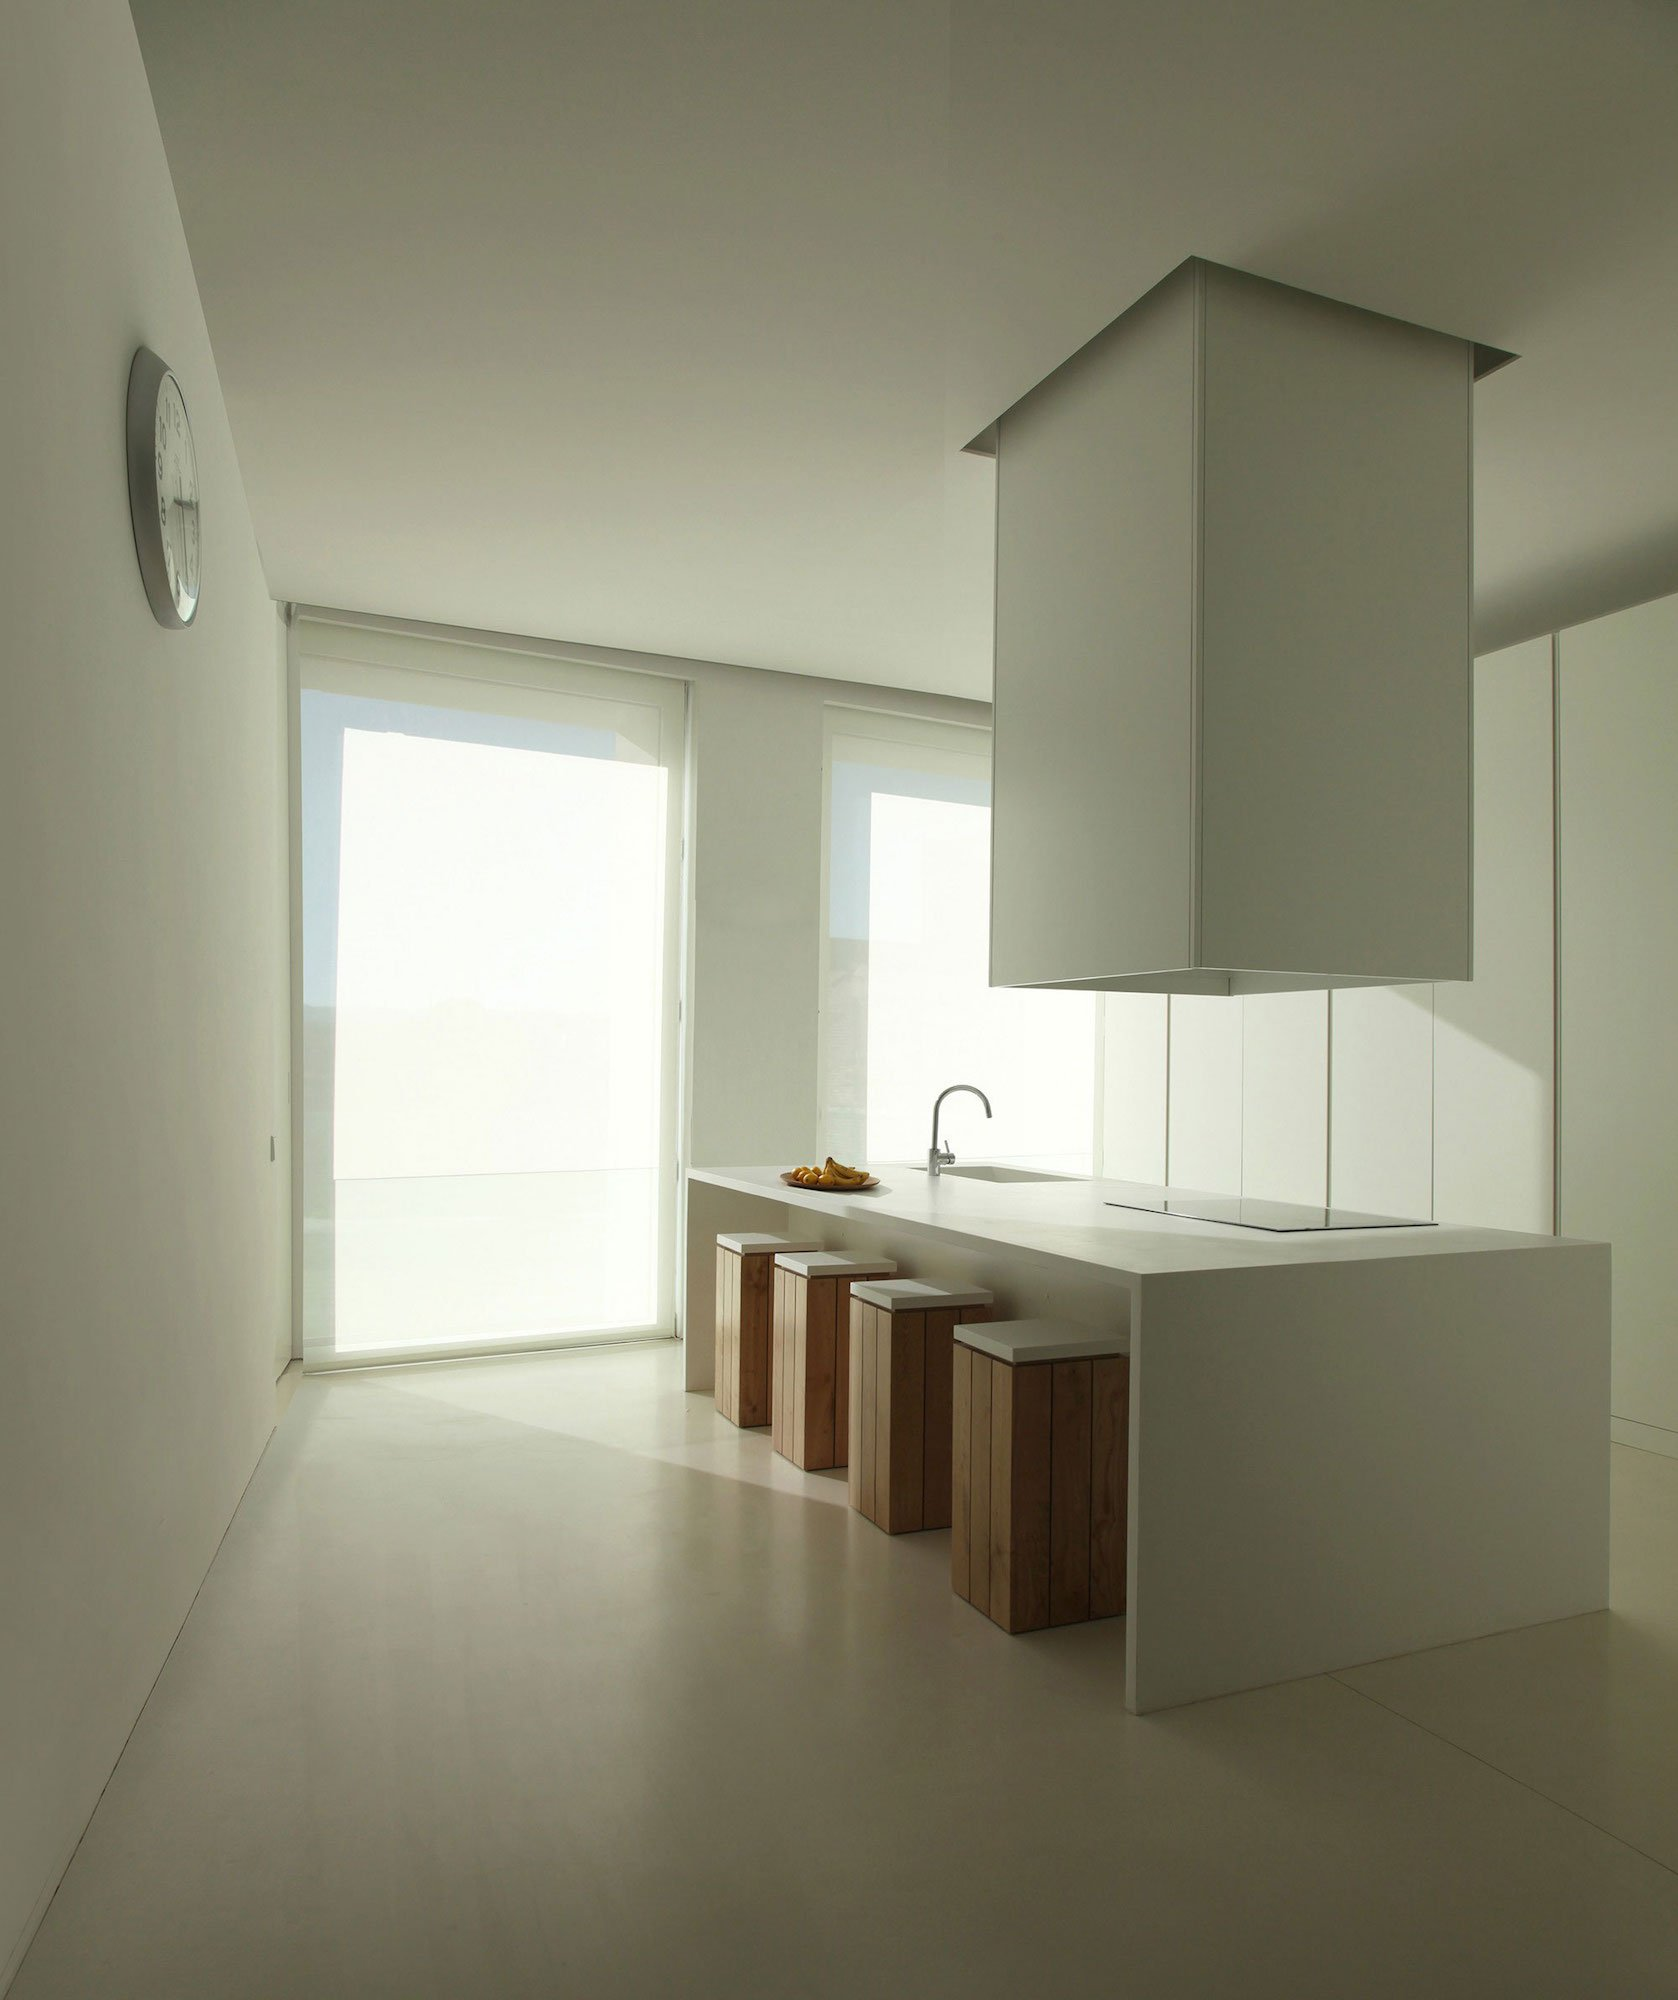 House-in-Ontinyent-09